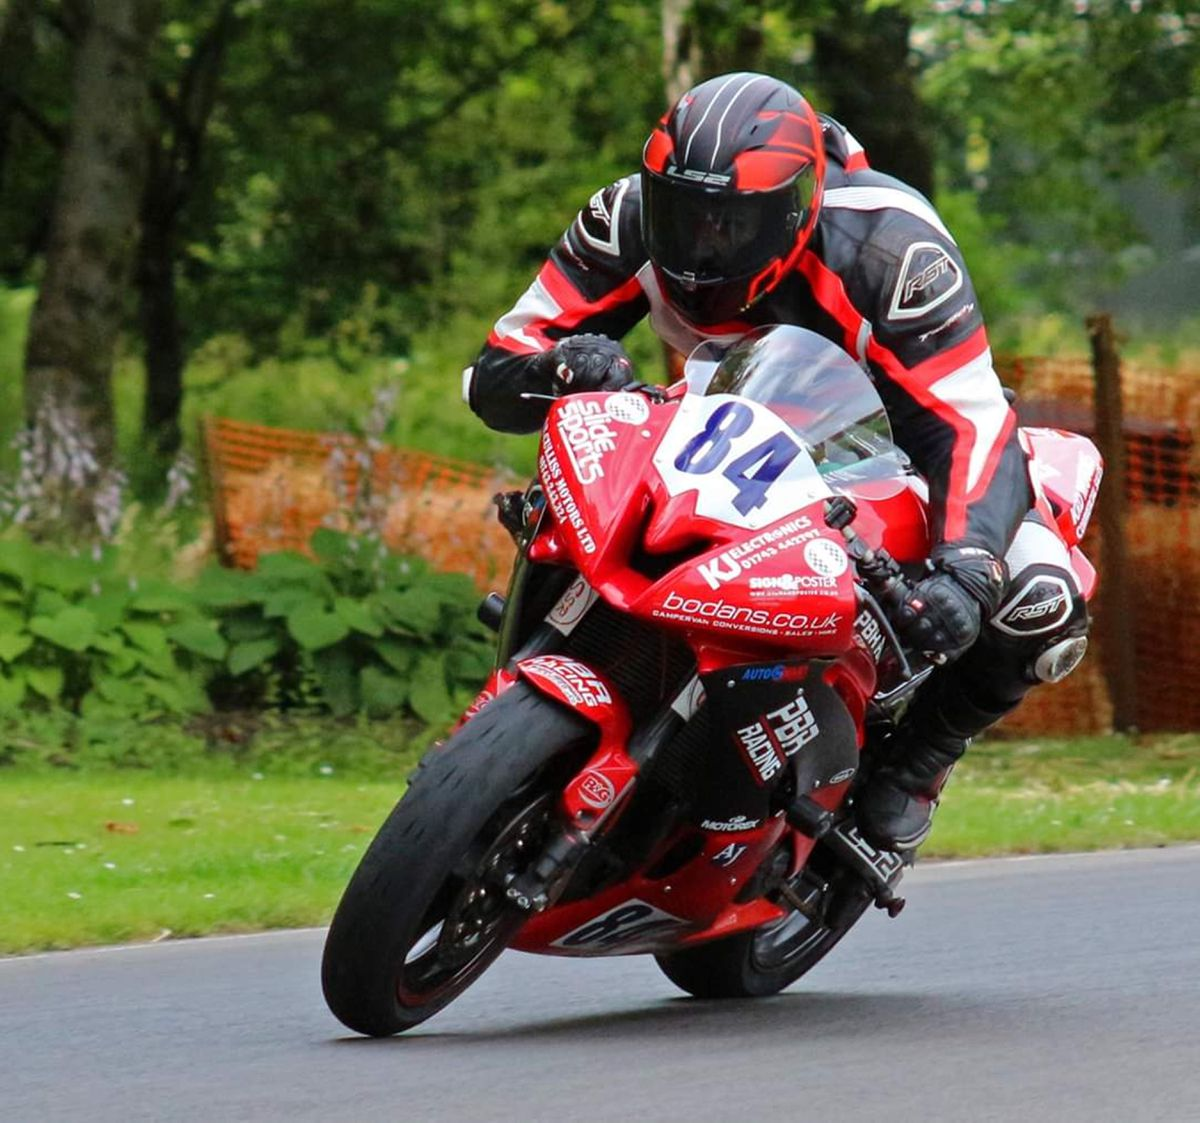 Evans has enjoyed success racing at the Aberdare Park Road Races. Picture: Gary Llew